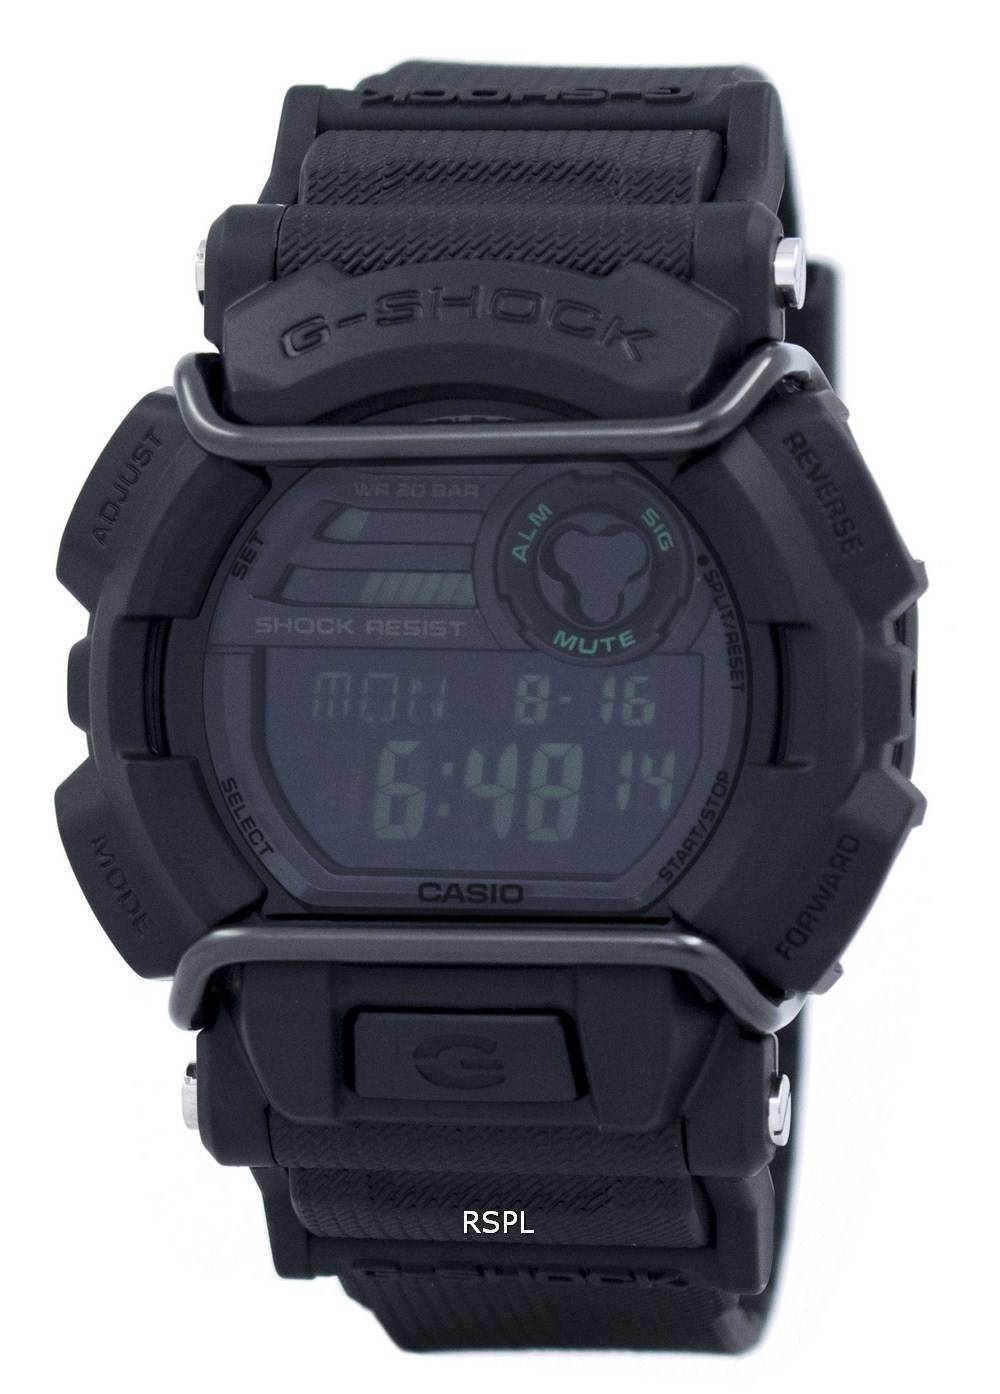 Casio G-Shock Illuminator World Time GD-400MB-1 Mens Watch ... 65f2d71a6